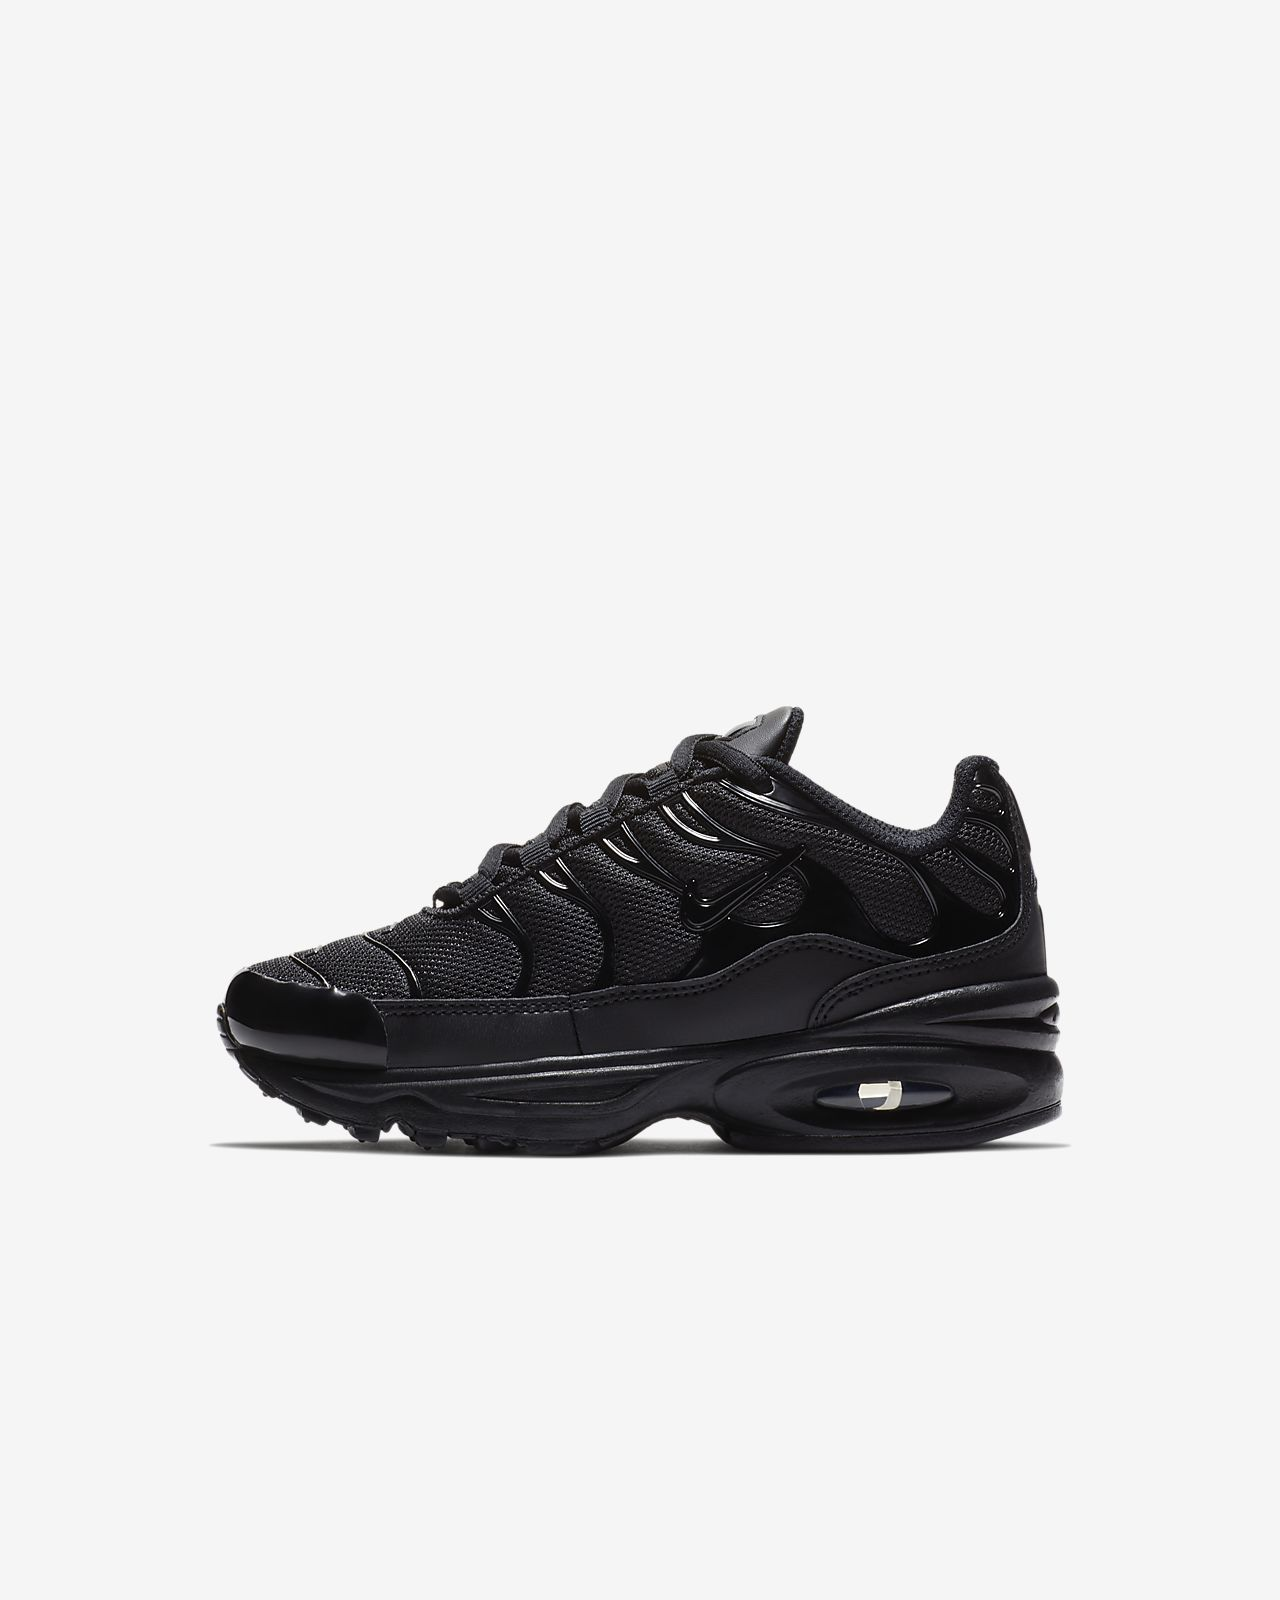 San Francisco 134e9 0cedc Nike Air Max Plus Younger Kids' Shoe